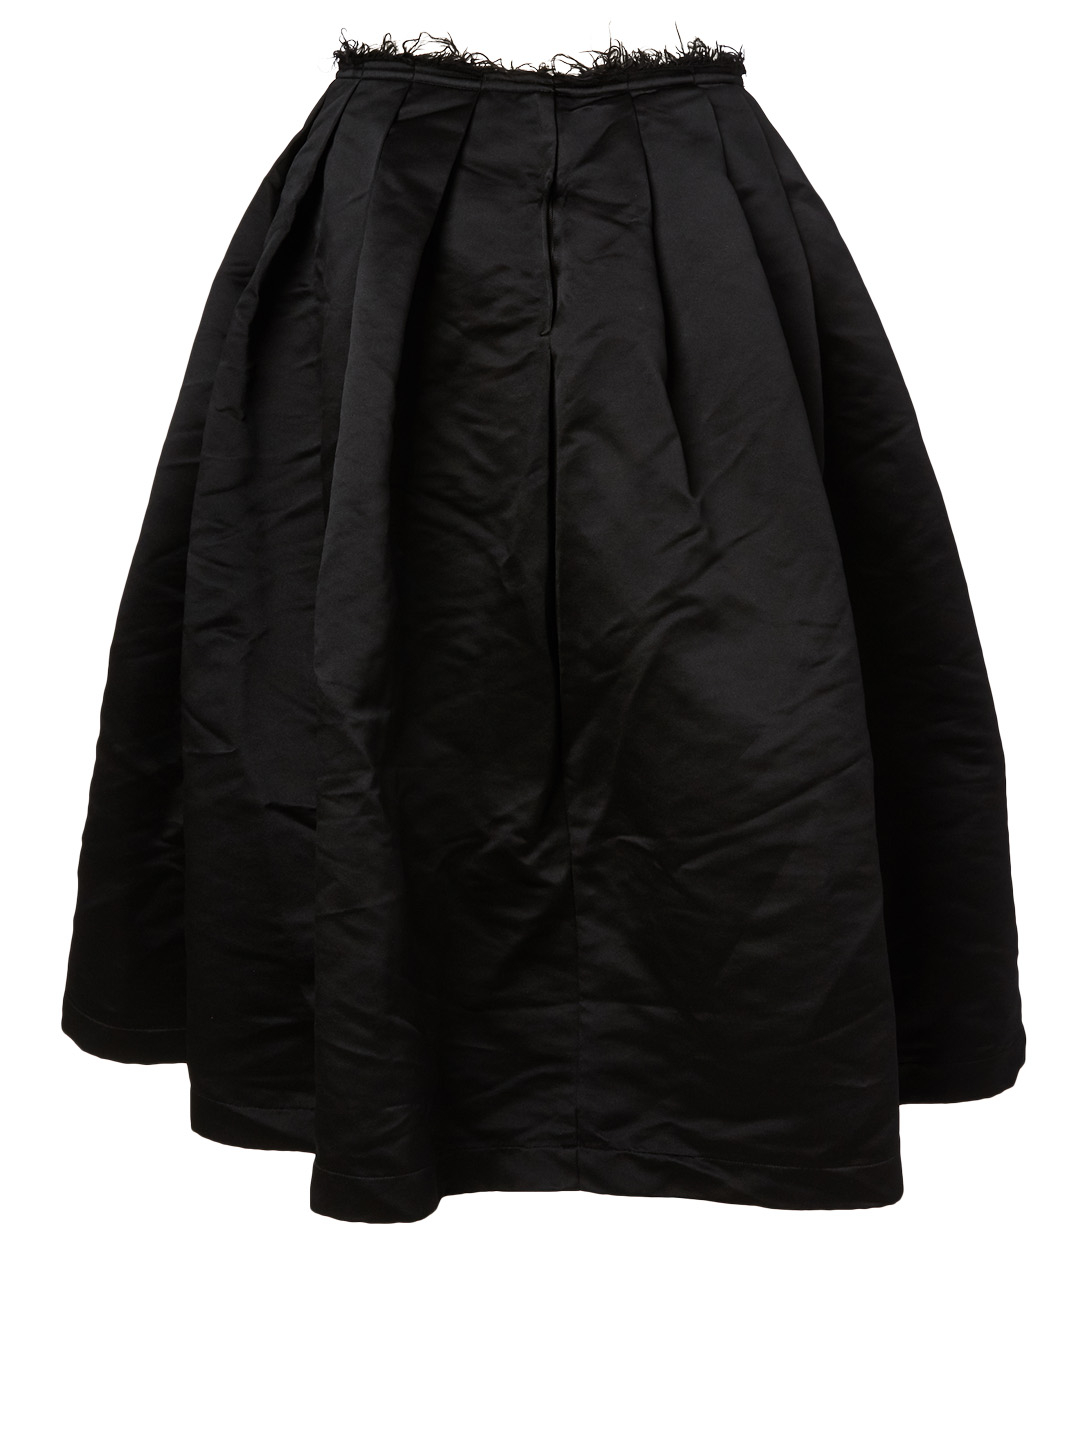 COMME DES GARÇONS Satin Pleated Skirt With Frayed Detail Women's Black